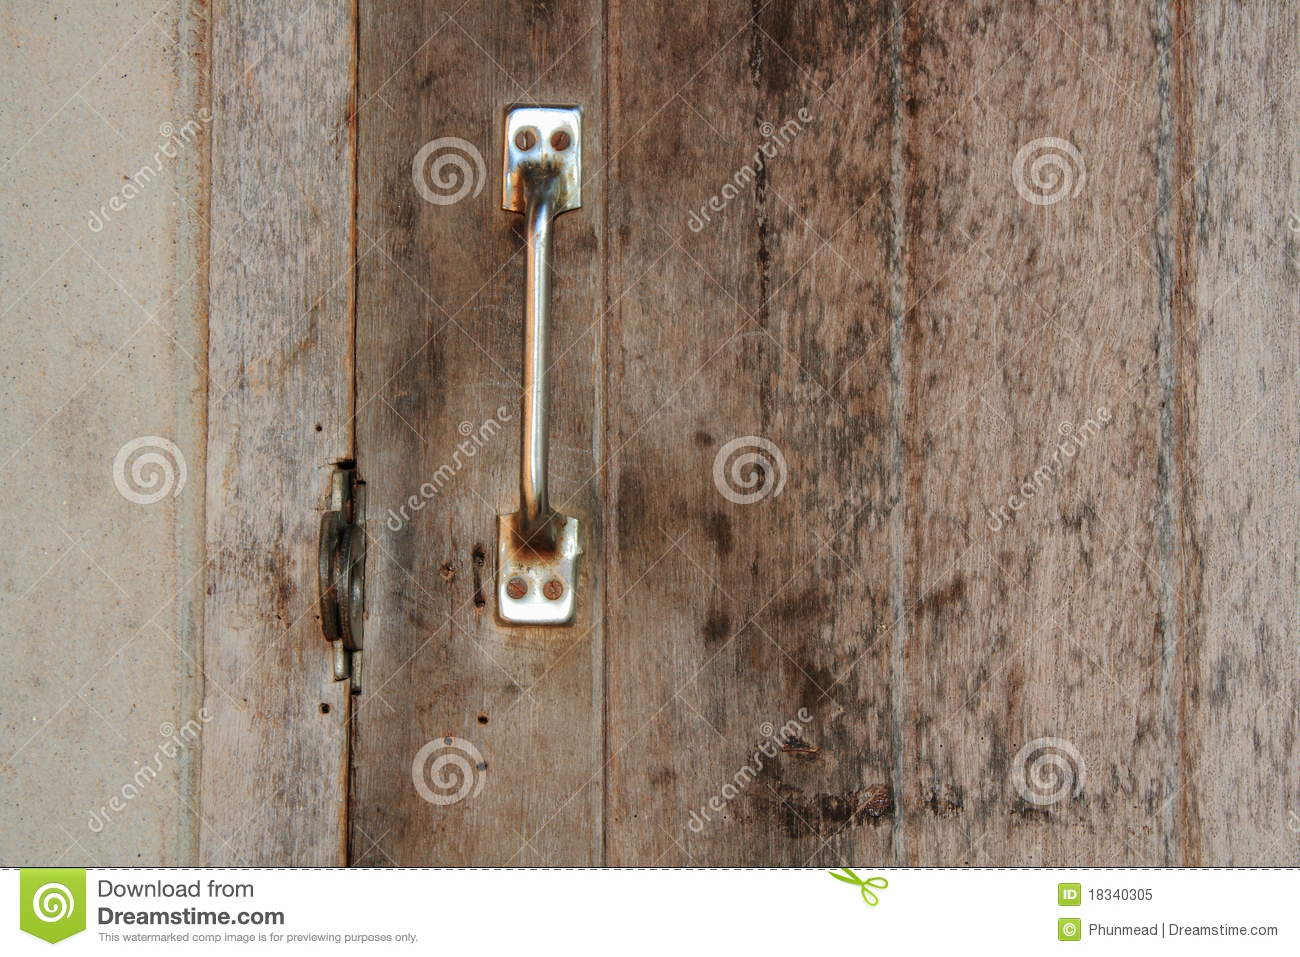 Doors And Locks Royalty Free Stock Image